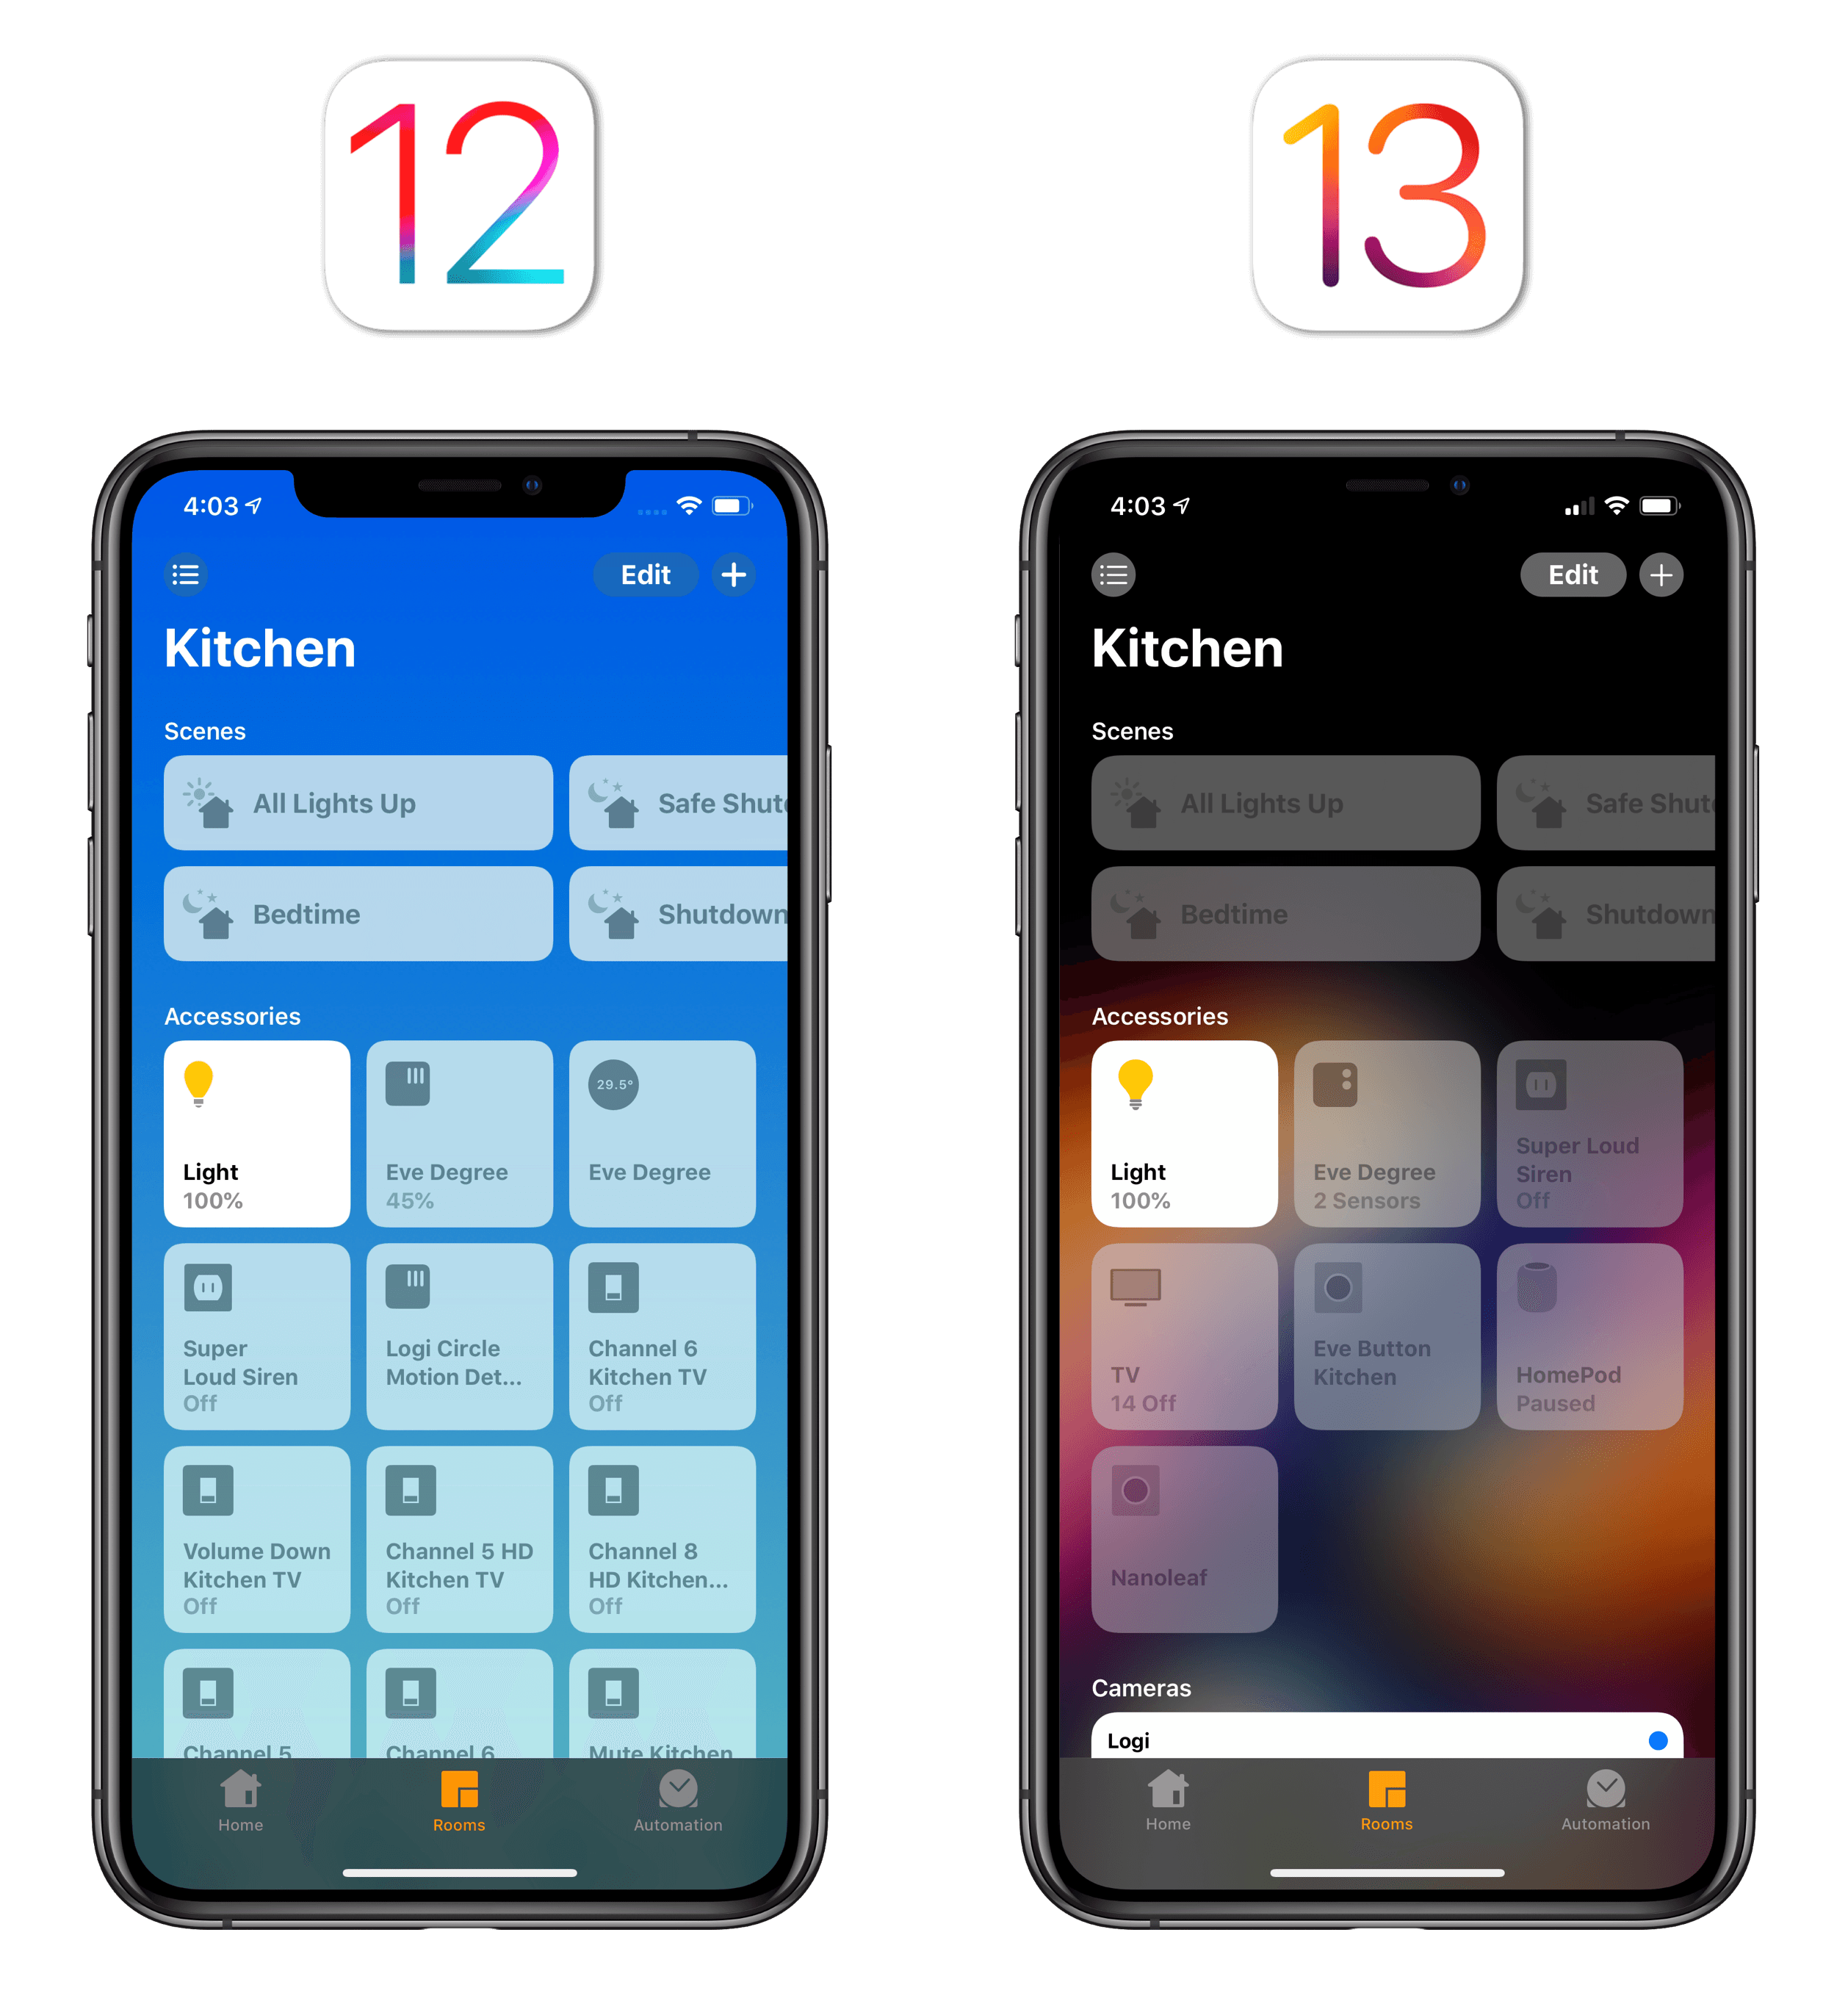 Service grouping in iOS 13.